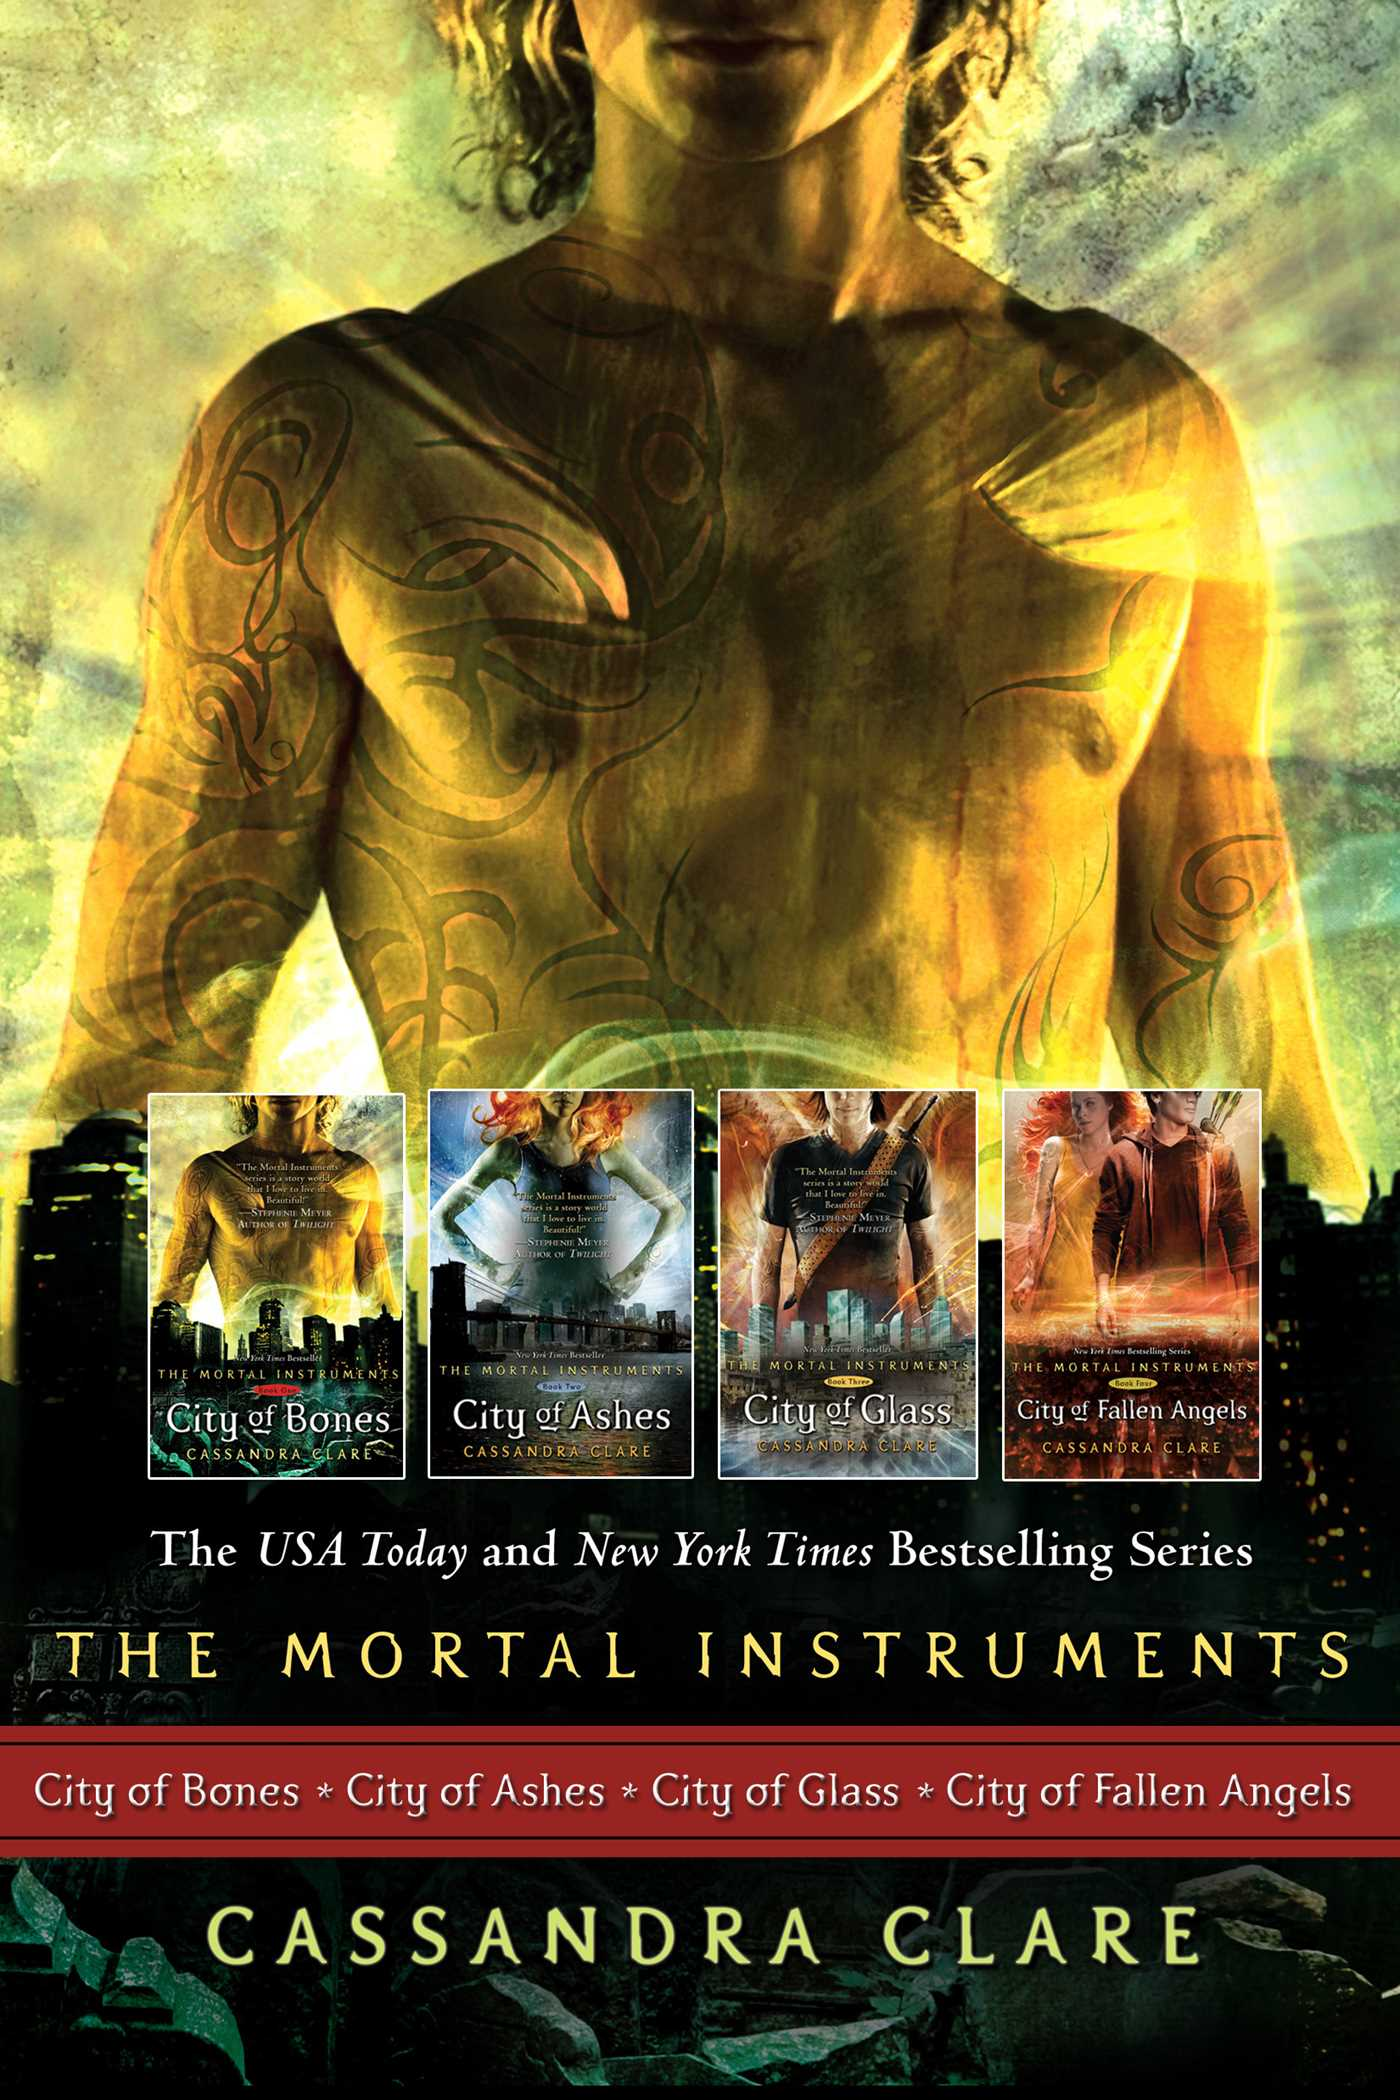 Cassandra-clare-the-mortal-instrument-series-4-books-9781442440432_hr